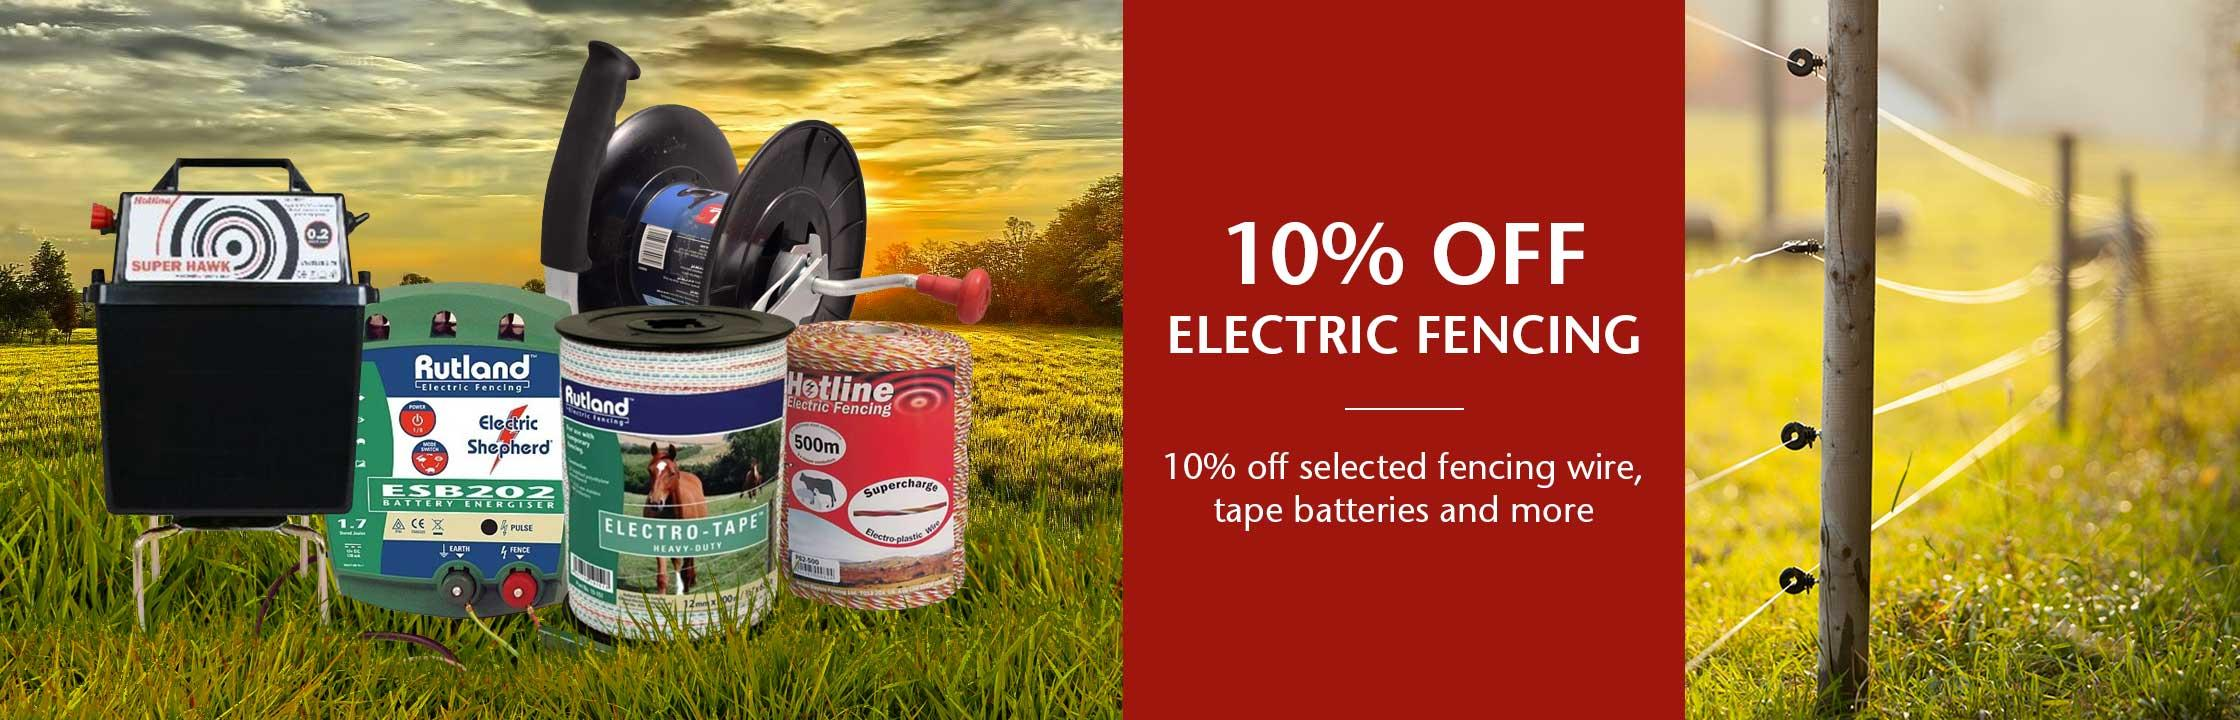 10% off selected products in Electric Fencing banner image